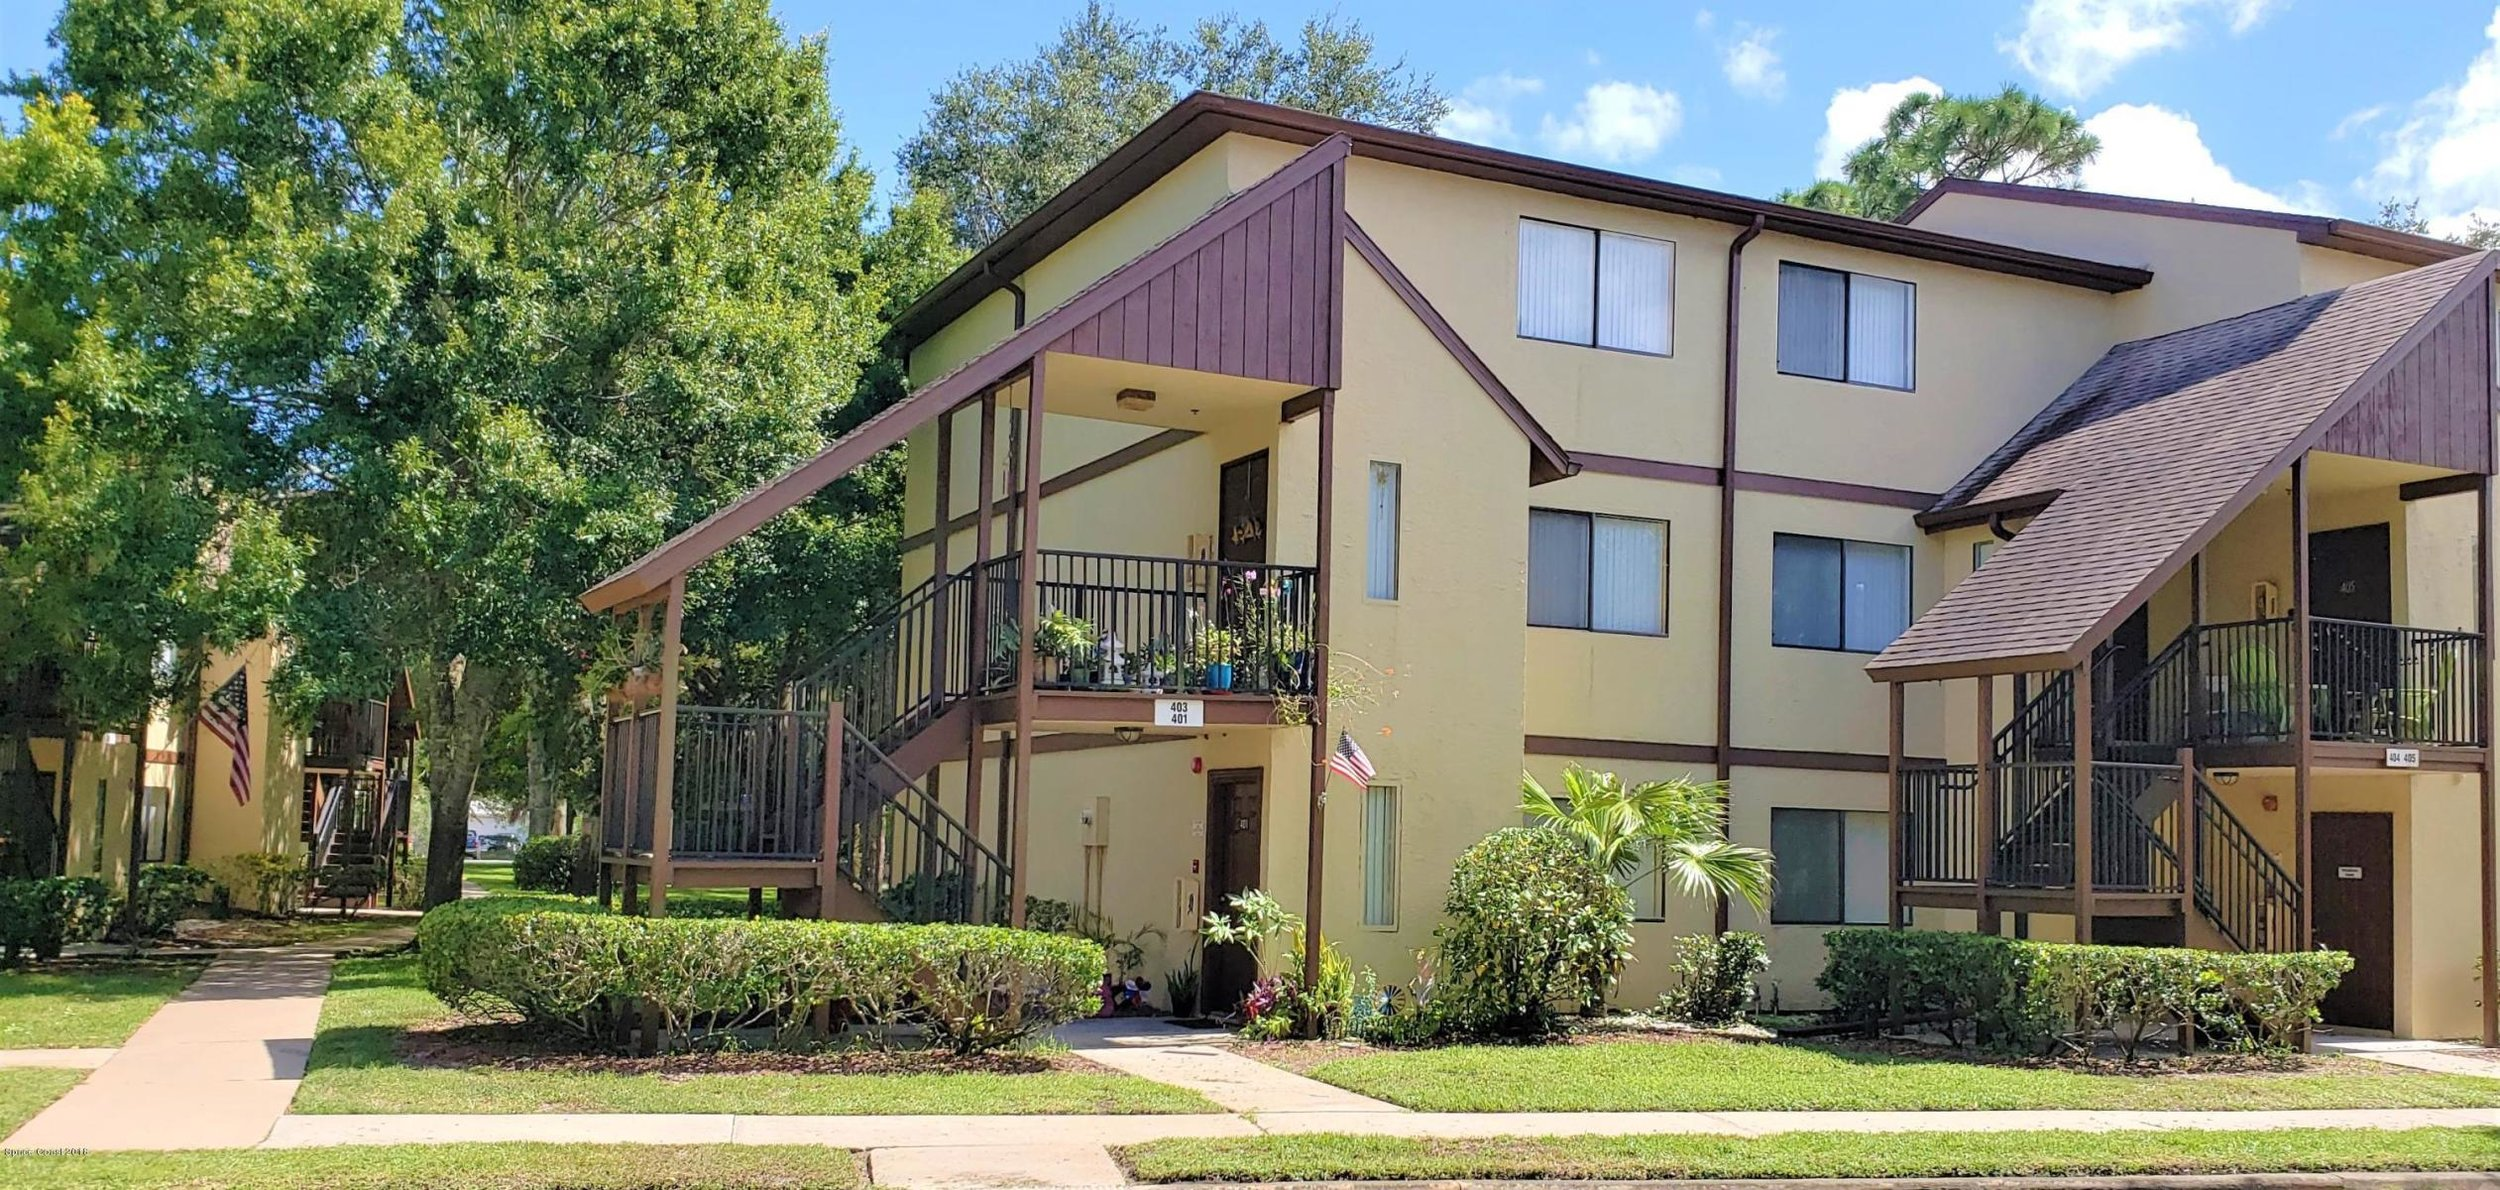 7821 Maplewood Dr #401, West Melbourne, FL Sold by Brent Burns